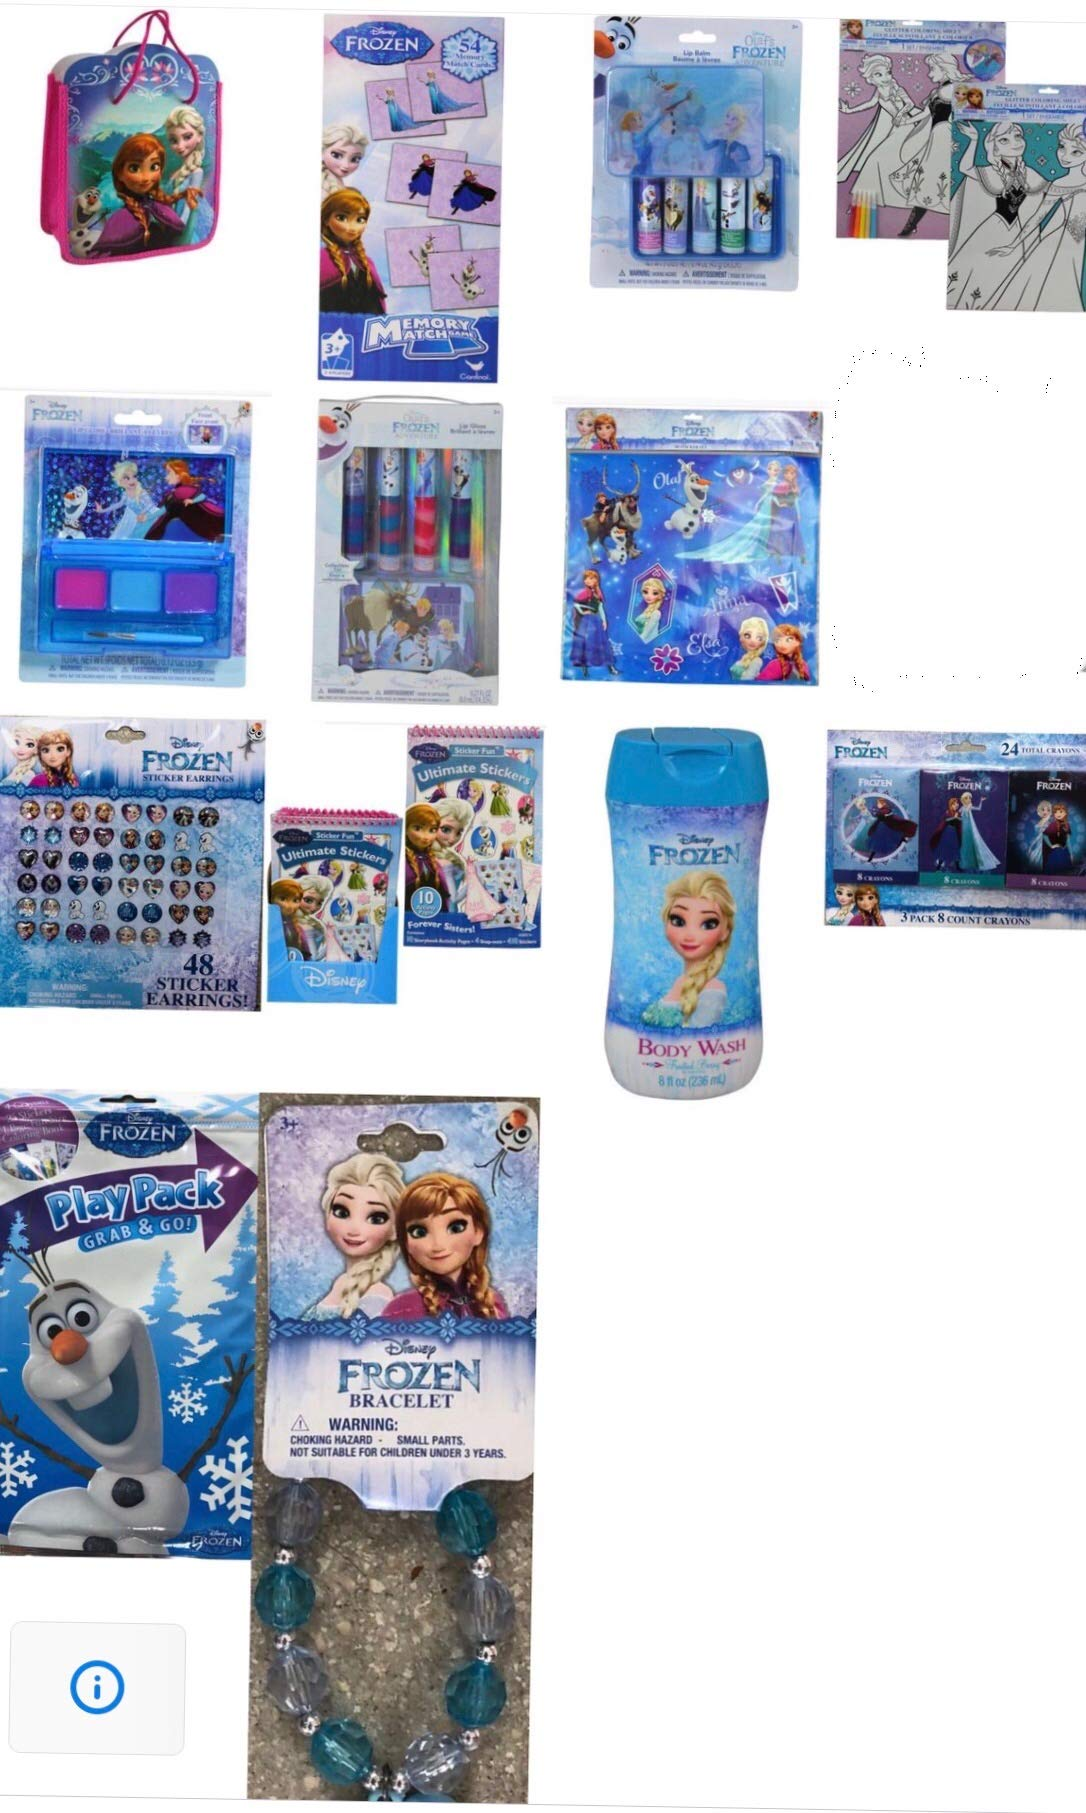 Disney Frozen Complete Bundle Surprise Girls Toys Bag/Cosmetic Set/Playpack+ Accessories Set (60+ pcs) | Perfect Gift for Girls Birthday,Christmas etc